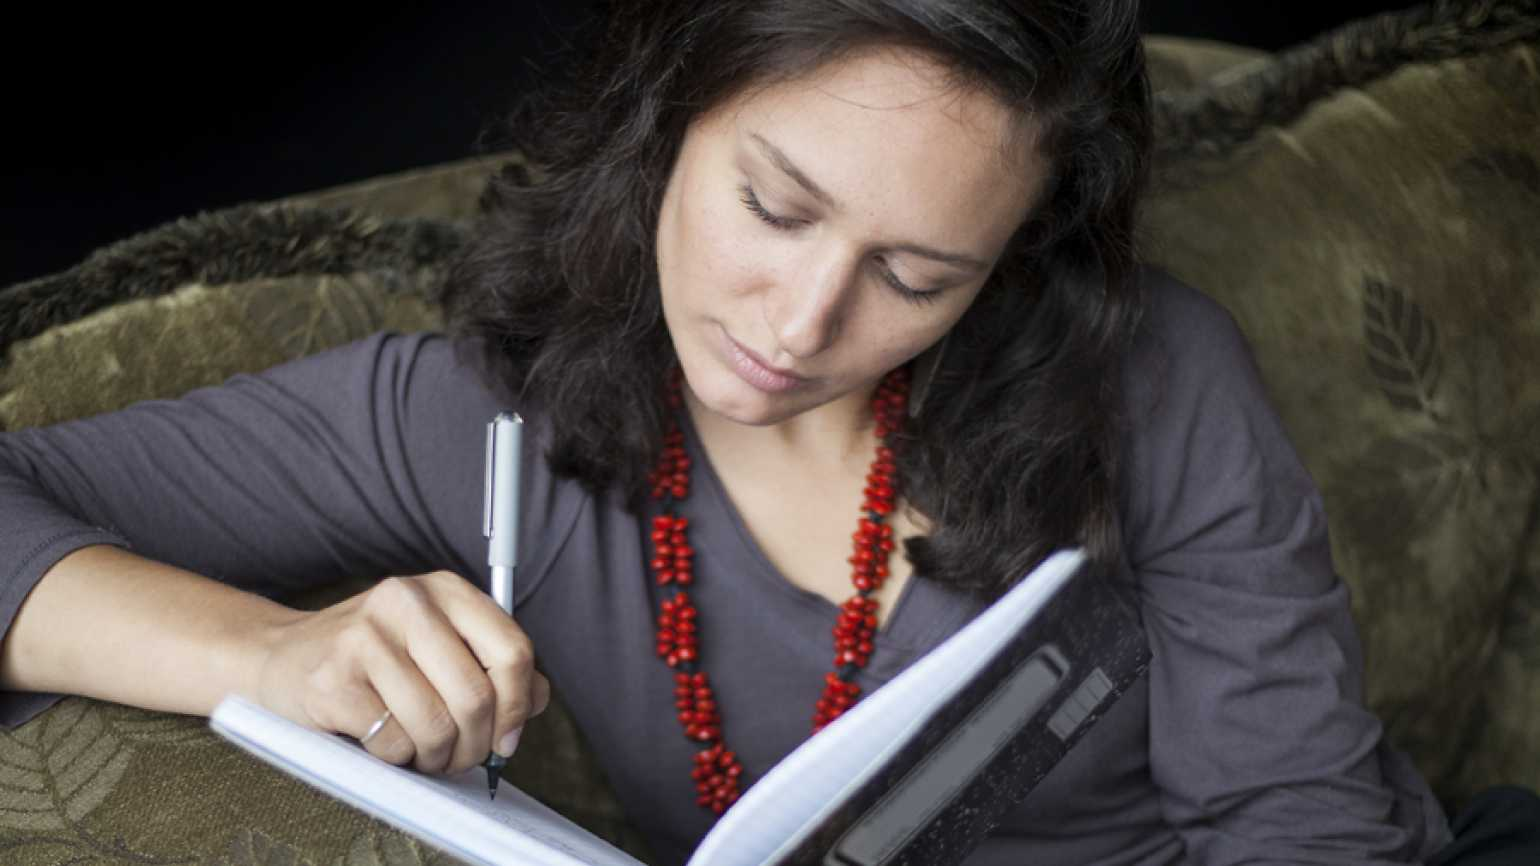 A woman writes in her journal.